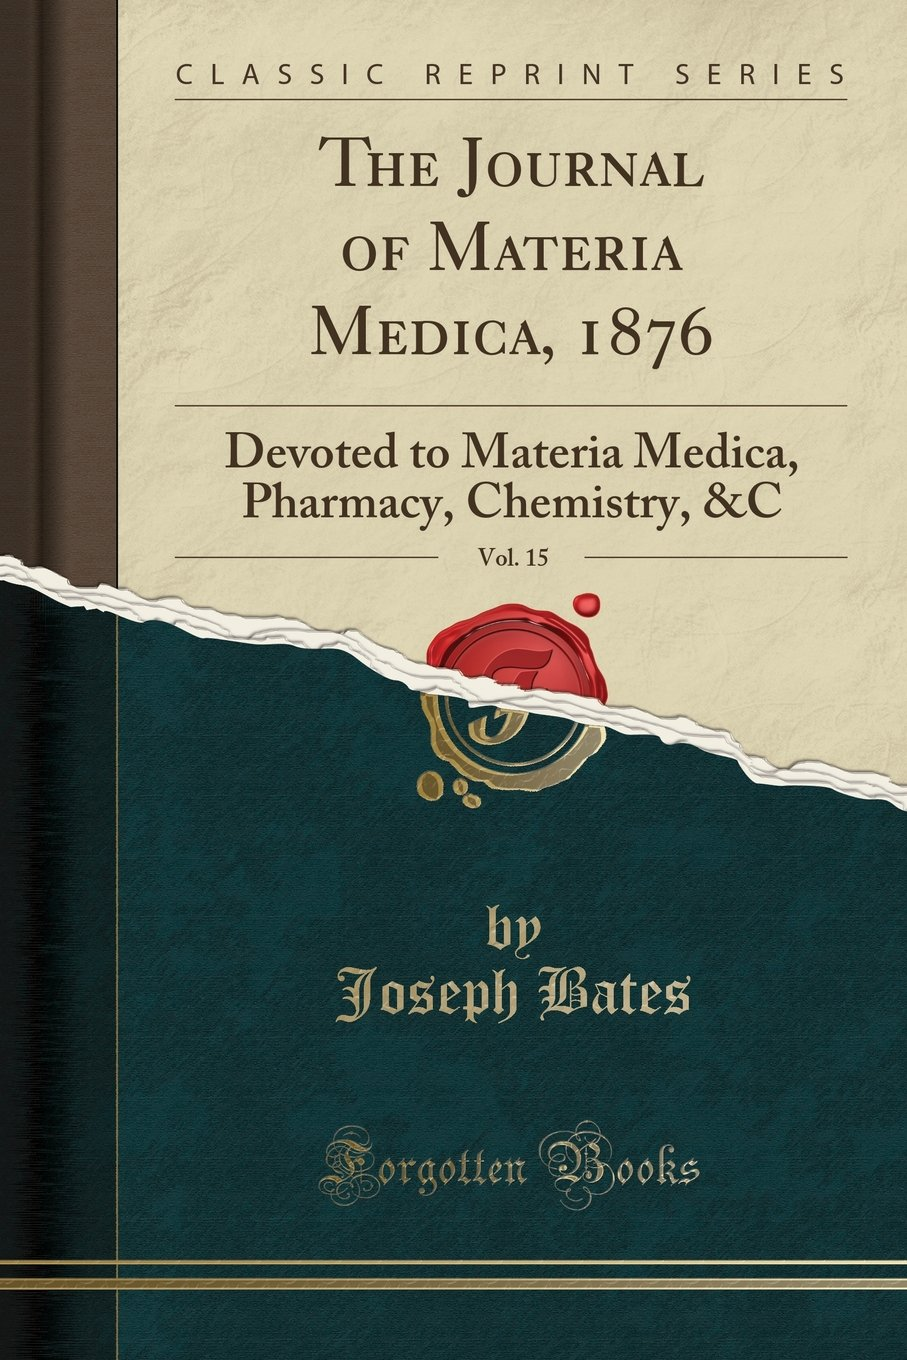 Download The Journal of Materia Medica, 1876, Vol. 15: Devoted to Materia Medica, Pharmacy, Chemistry, &c (Classic Reprint) pdf